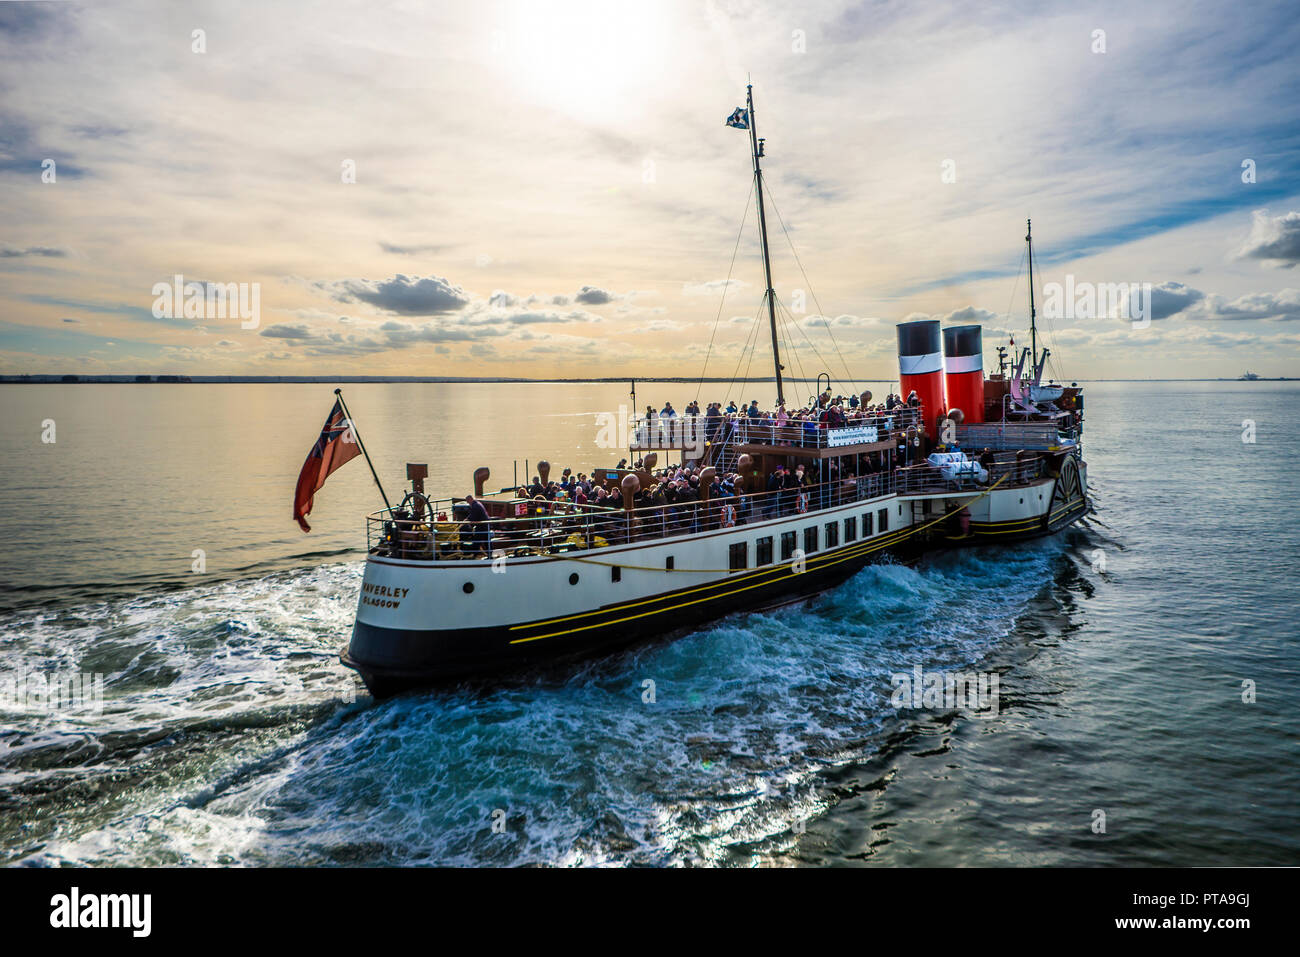 paddle-steamer-waverley-leaving-southend-pier-on-the-thames-estuary-with-passengers-for-a-tourist-trip-on-river-thames-to-london-space-for-copy-PTA9GJ.jpg